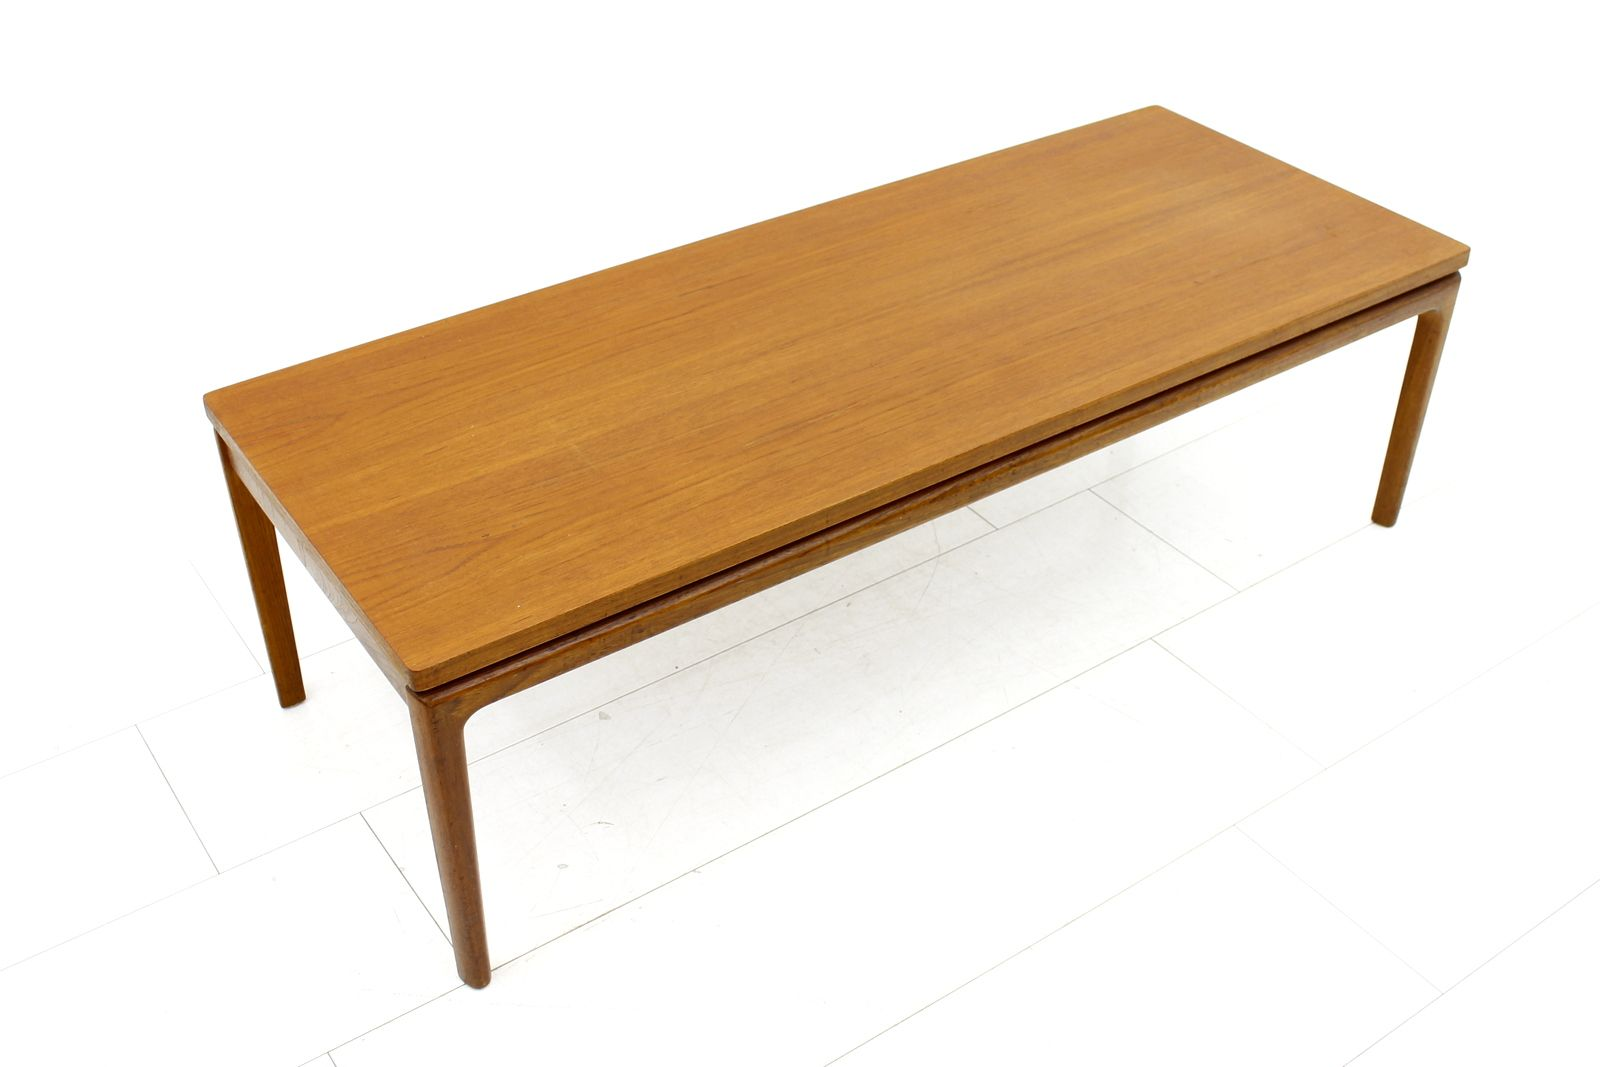 Danish Teak Coffee Table By Ole Wanscher For France Son